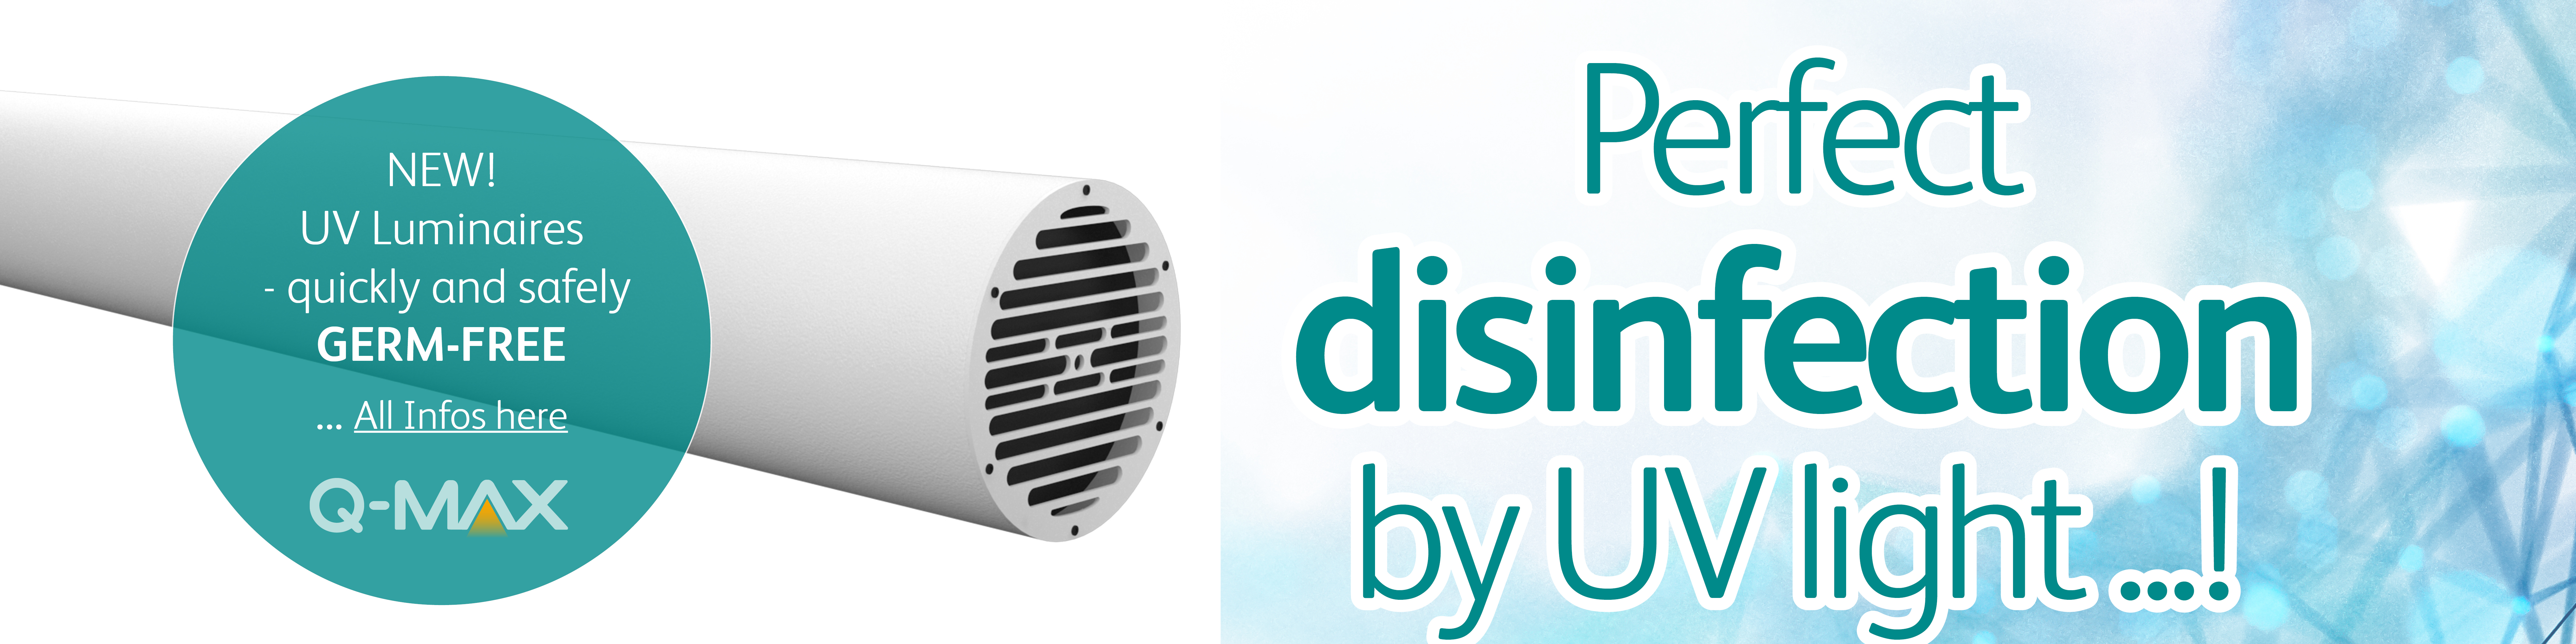 Germ-free_with_UV-Direct-luminaires